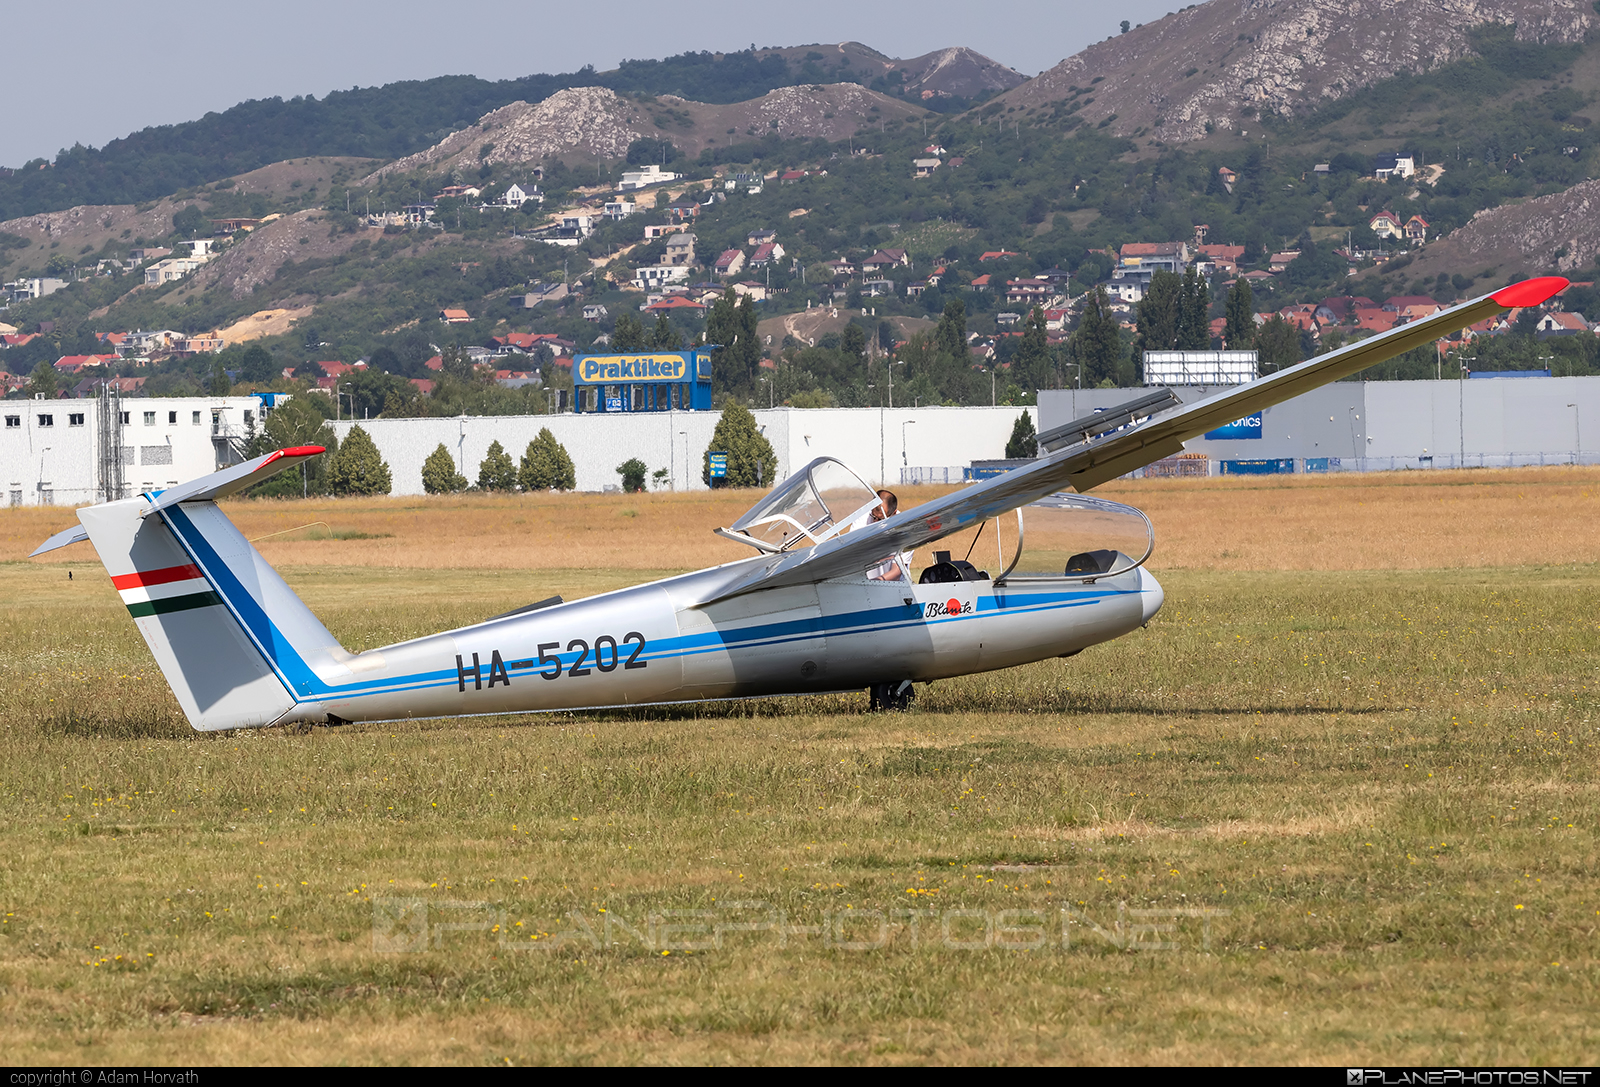 Let L-23 Super Blanik - HA-5202 operated by Private operator #let